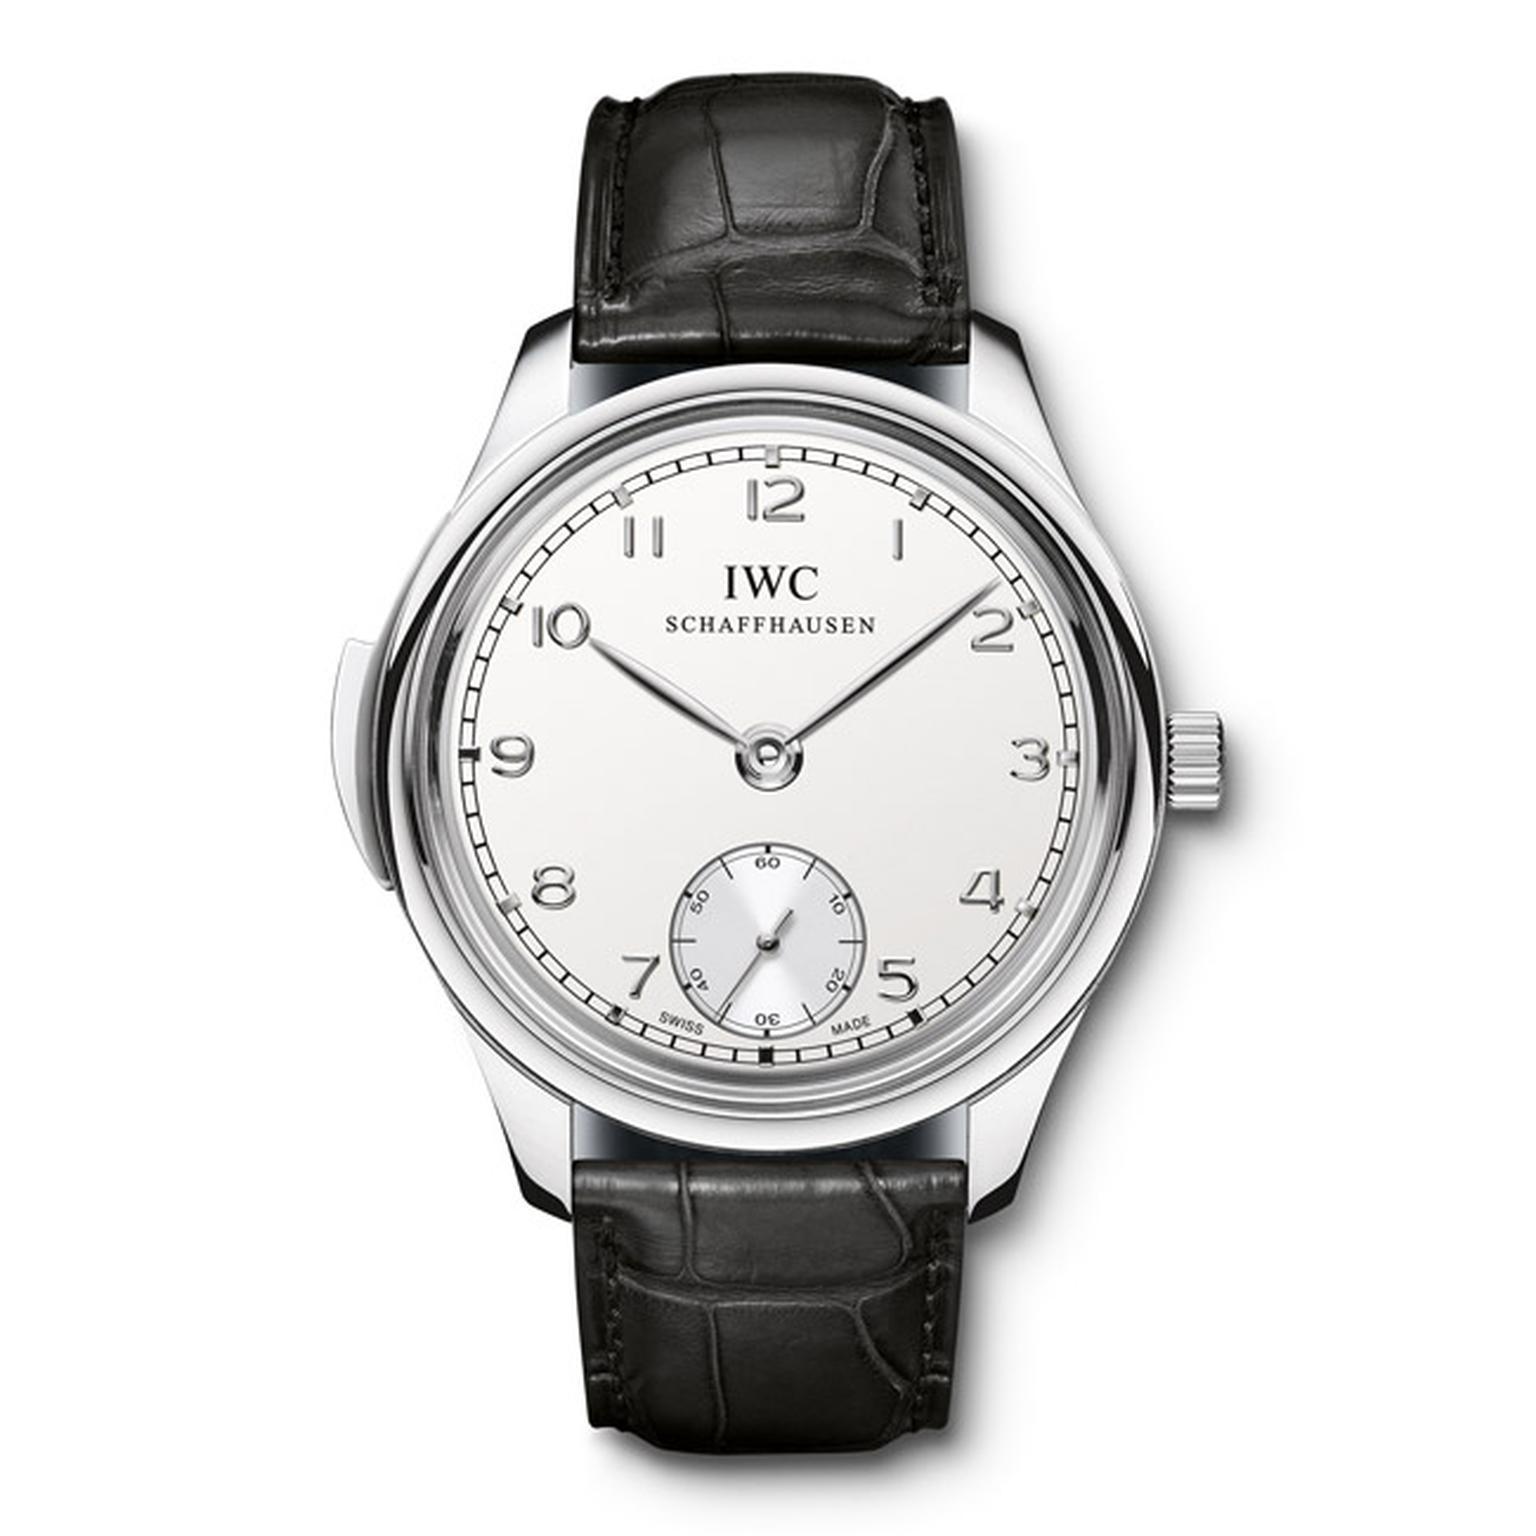 IWC Portugieser Minute Repeater in platinum Main